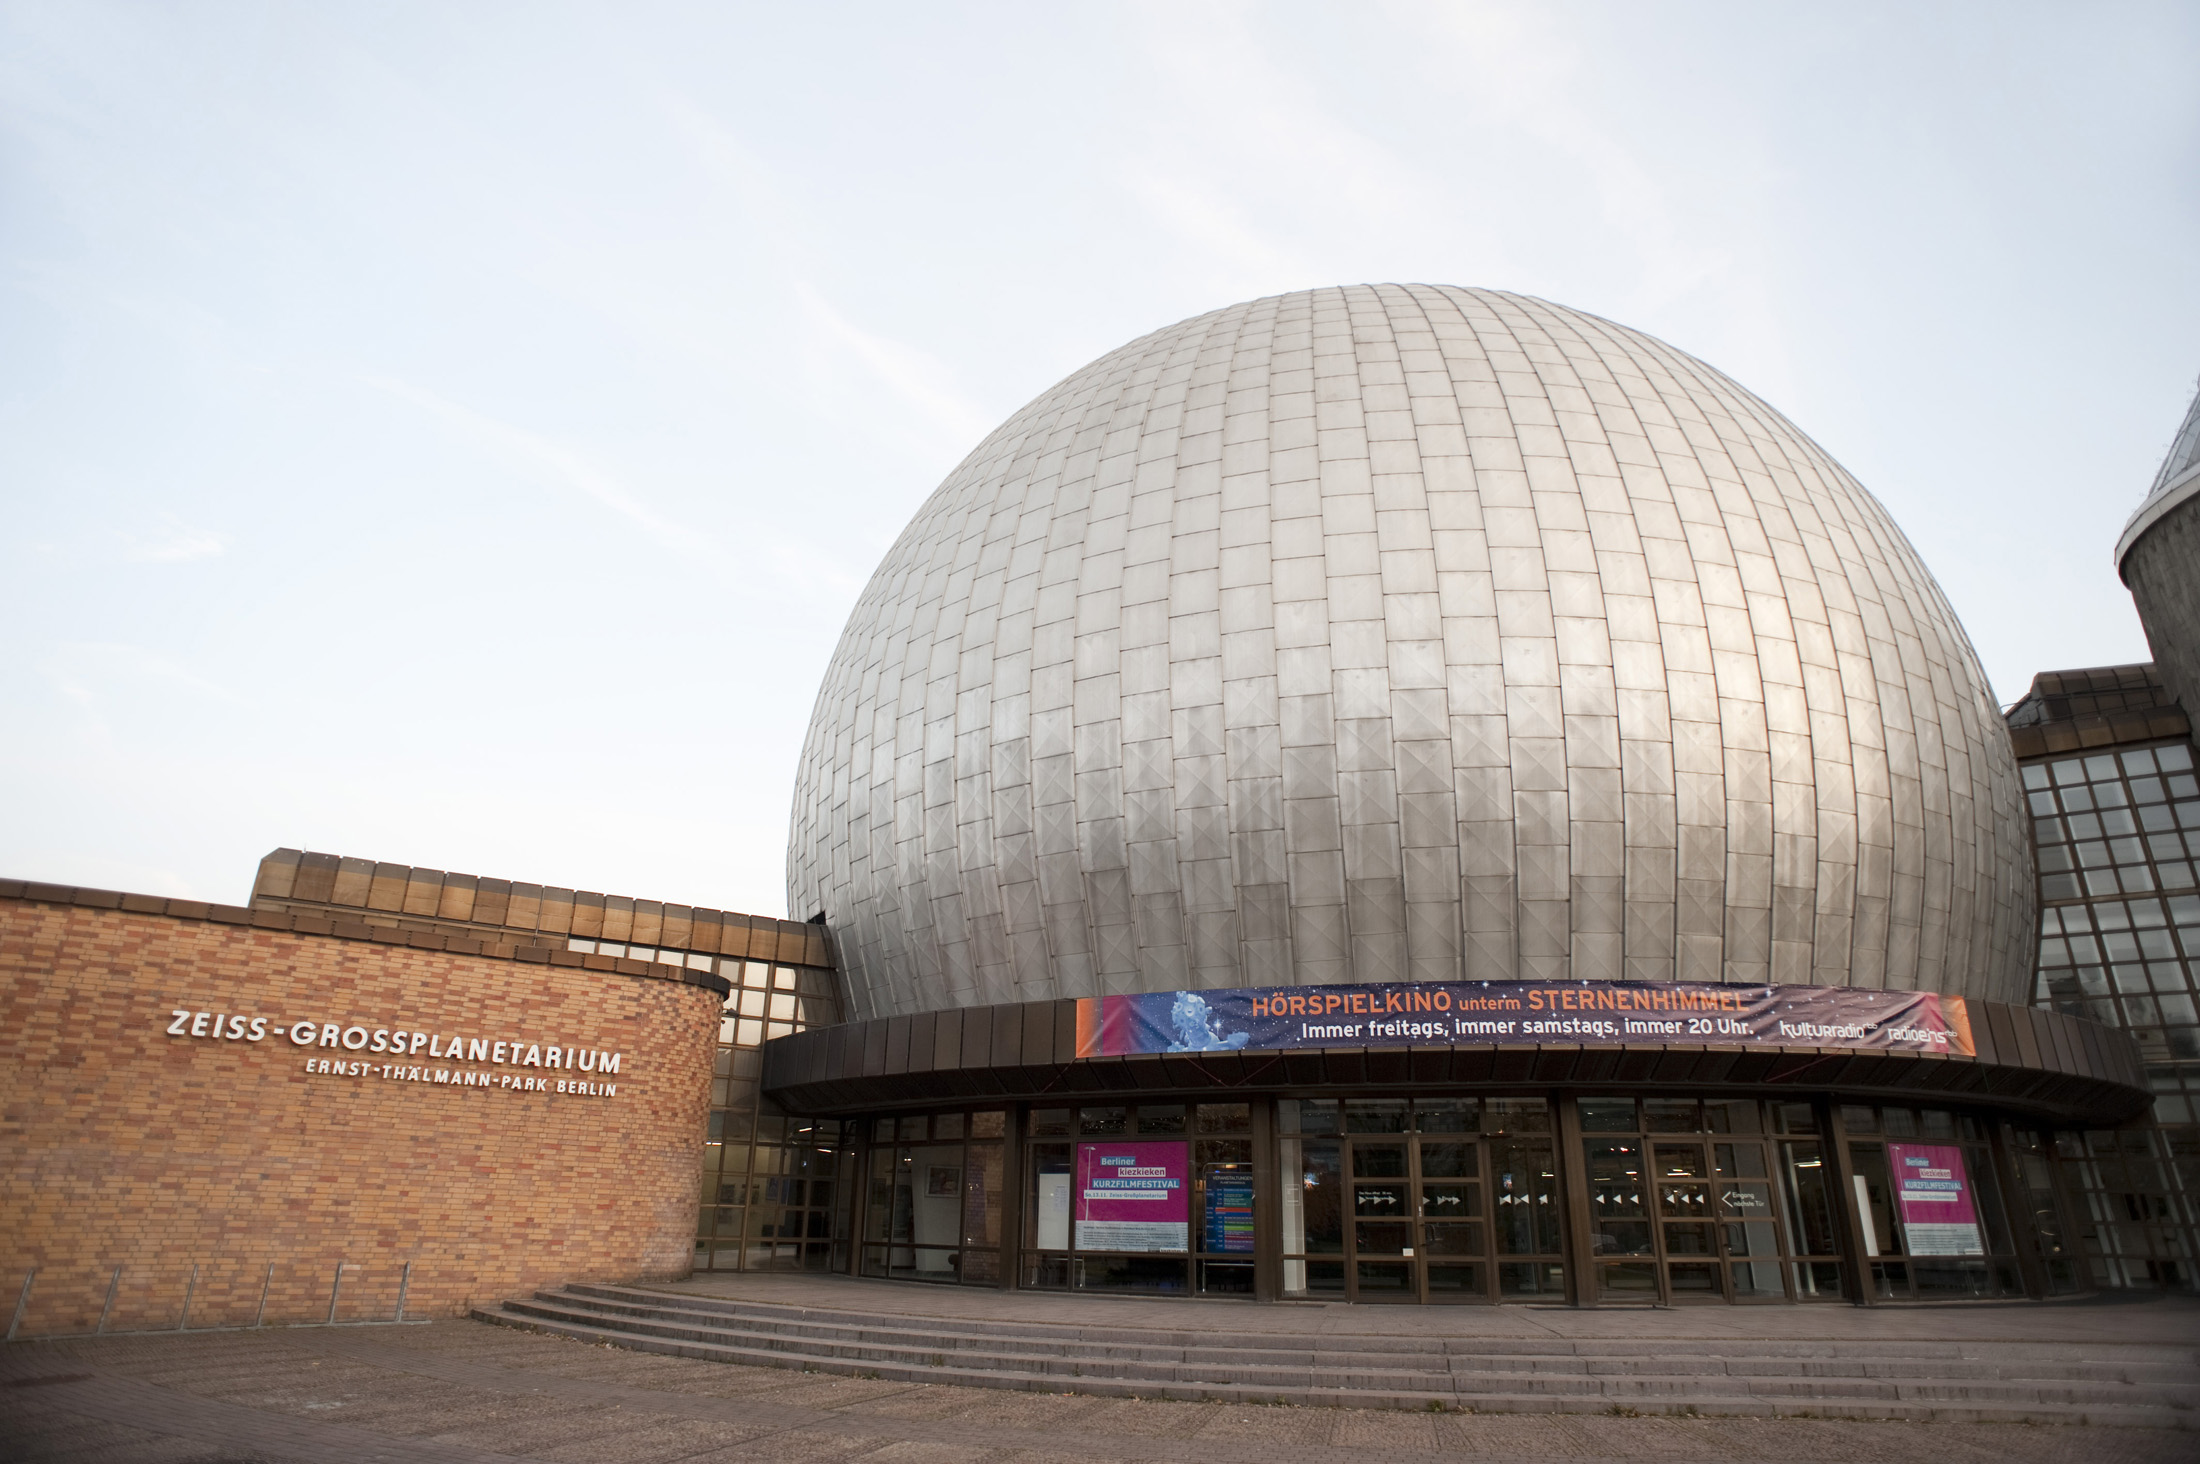 outside view of the berlin planetarium